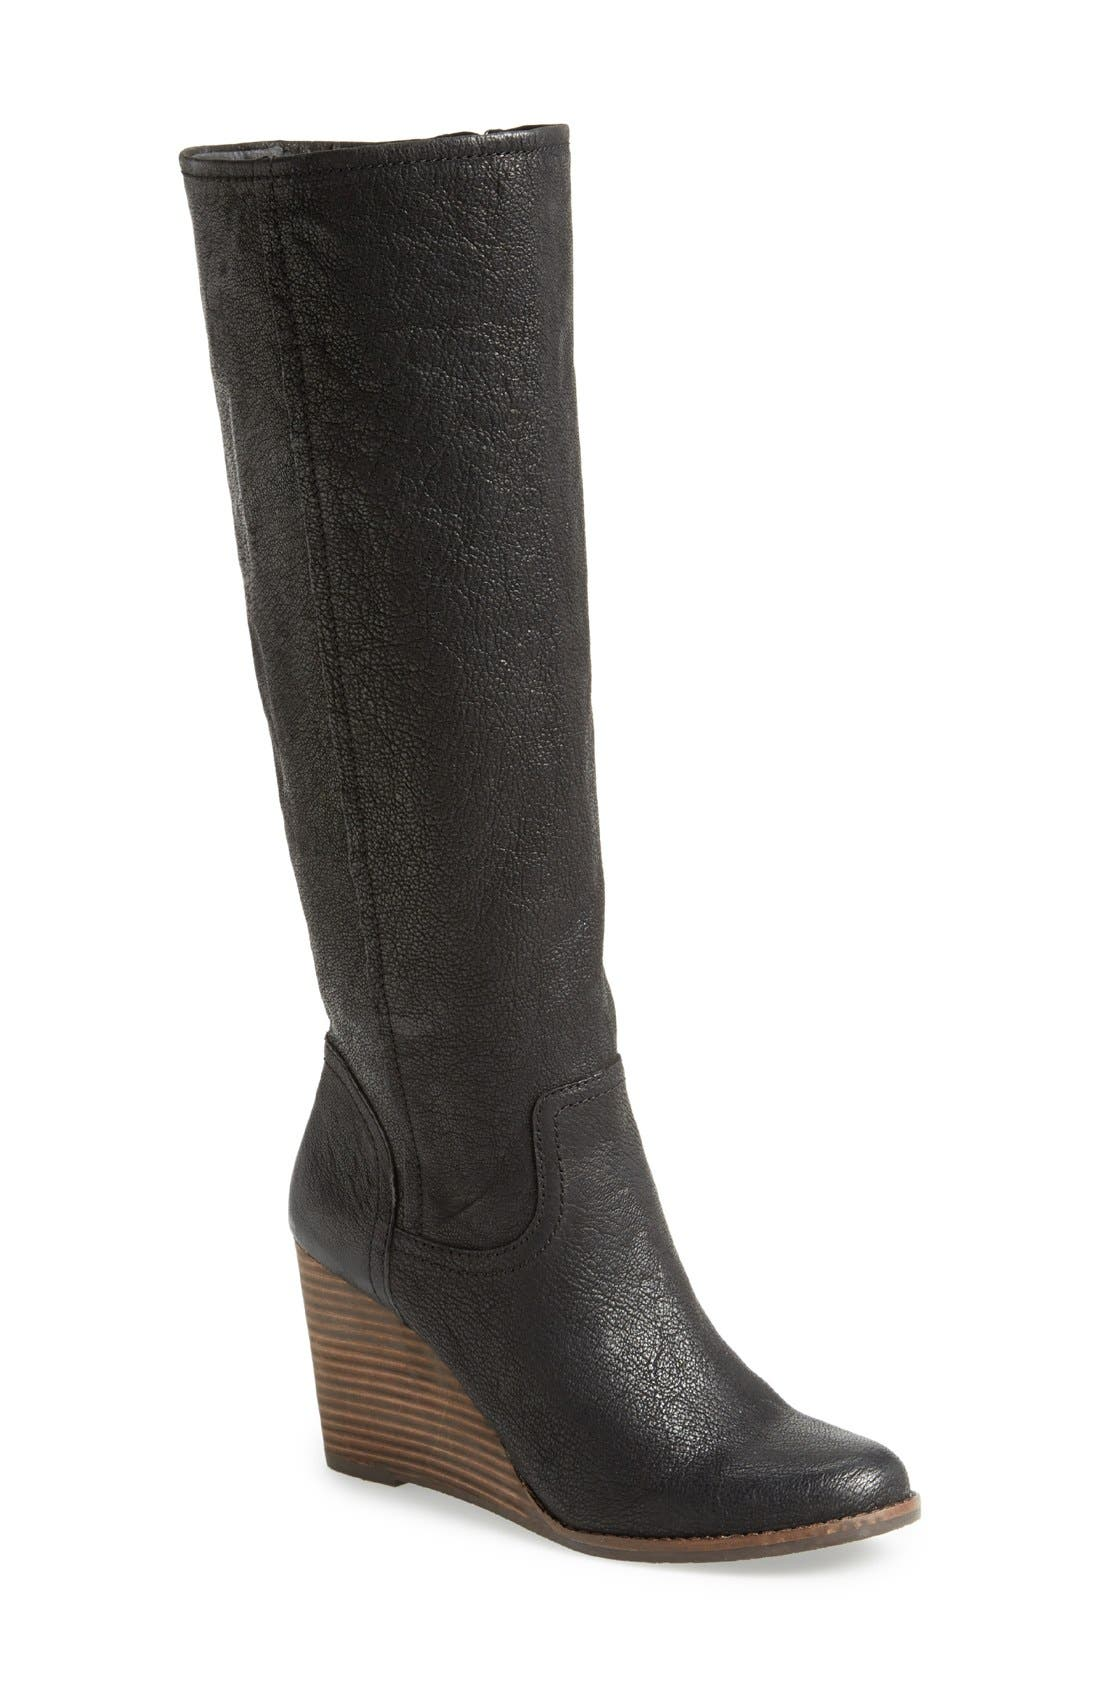 'Yacie' Leather Wedge Boot,                             Main thumbnail 1, color,                             002